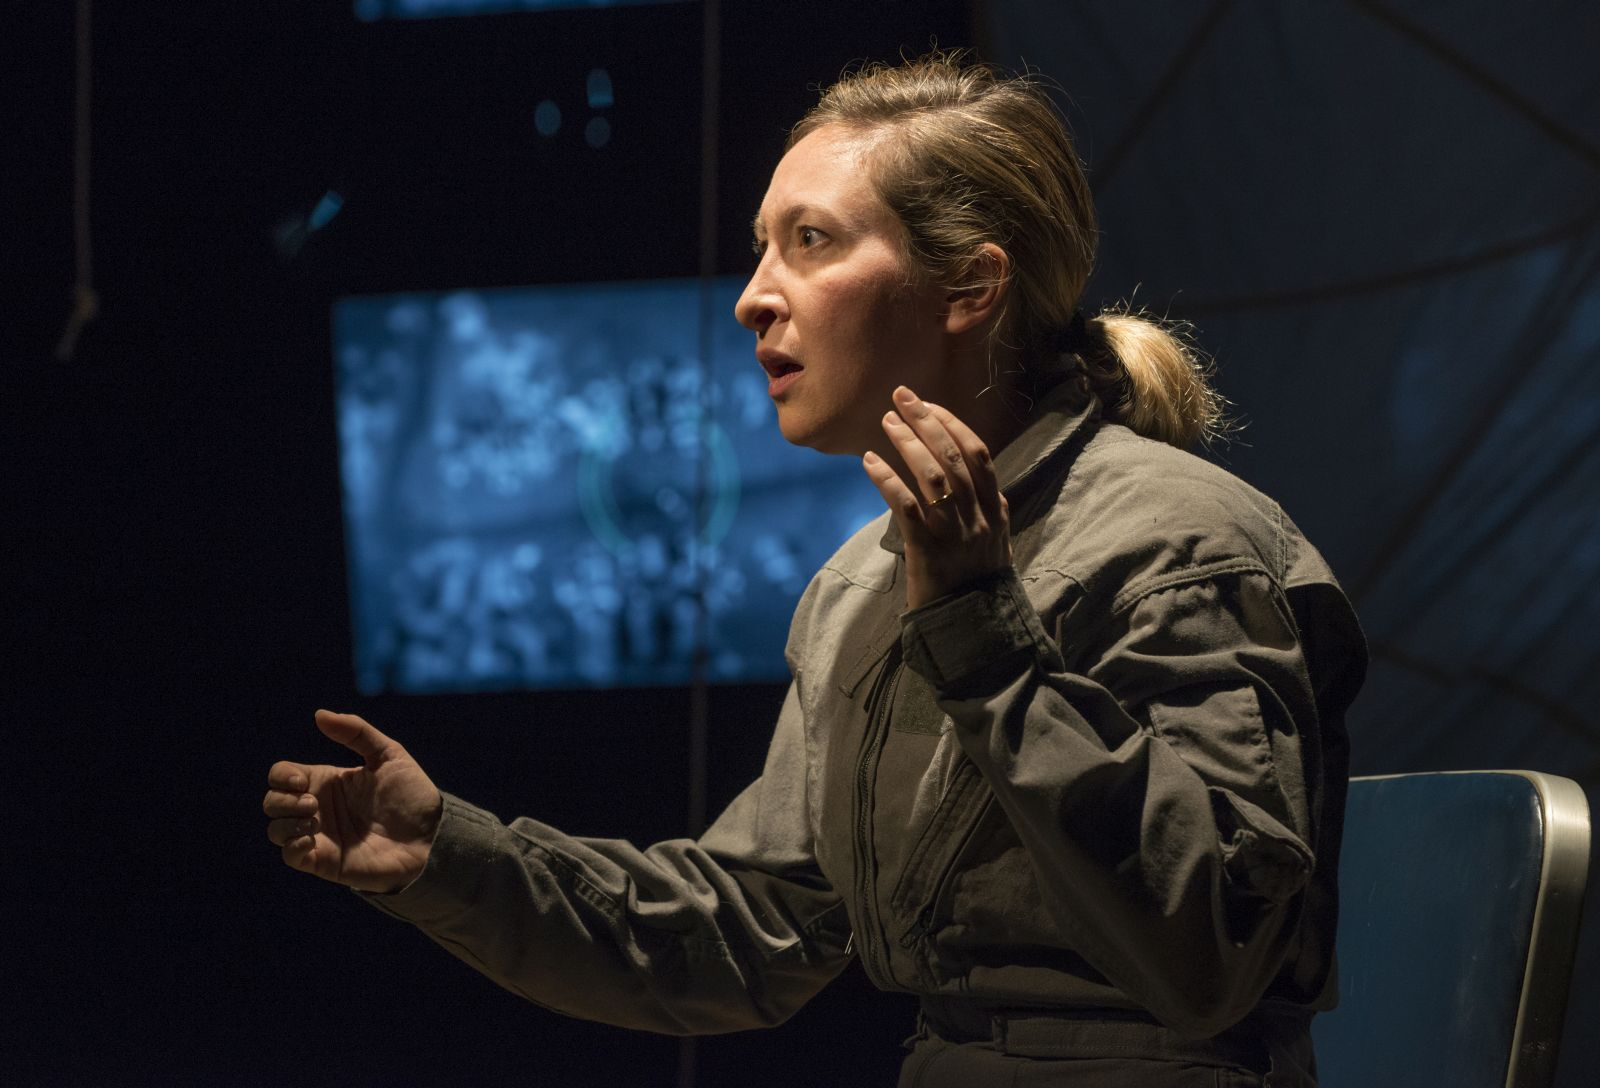 """Milwaukee Repertory Theater presents """"Grounded"""" in the Stiemke Studio Feb 22 – April 2, 2017. Featuring Jessie Fisher as The Pilot. Photo by Michael Brosilow."""